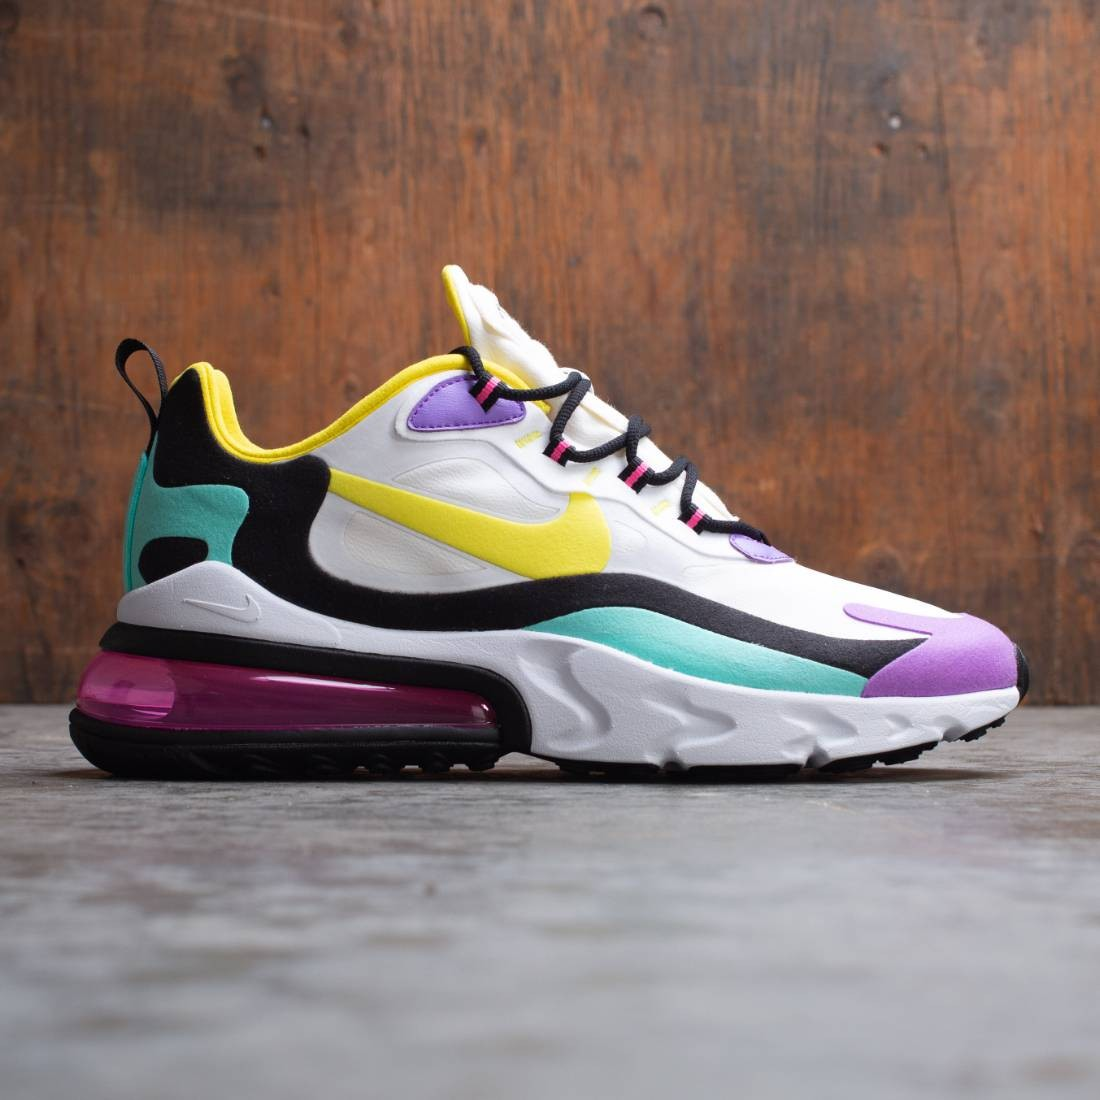 Nike Men Air Max 270 React Geometric Art (white dynamic yellow black bright violet)